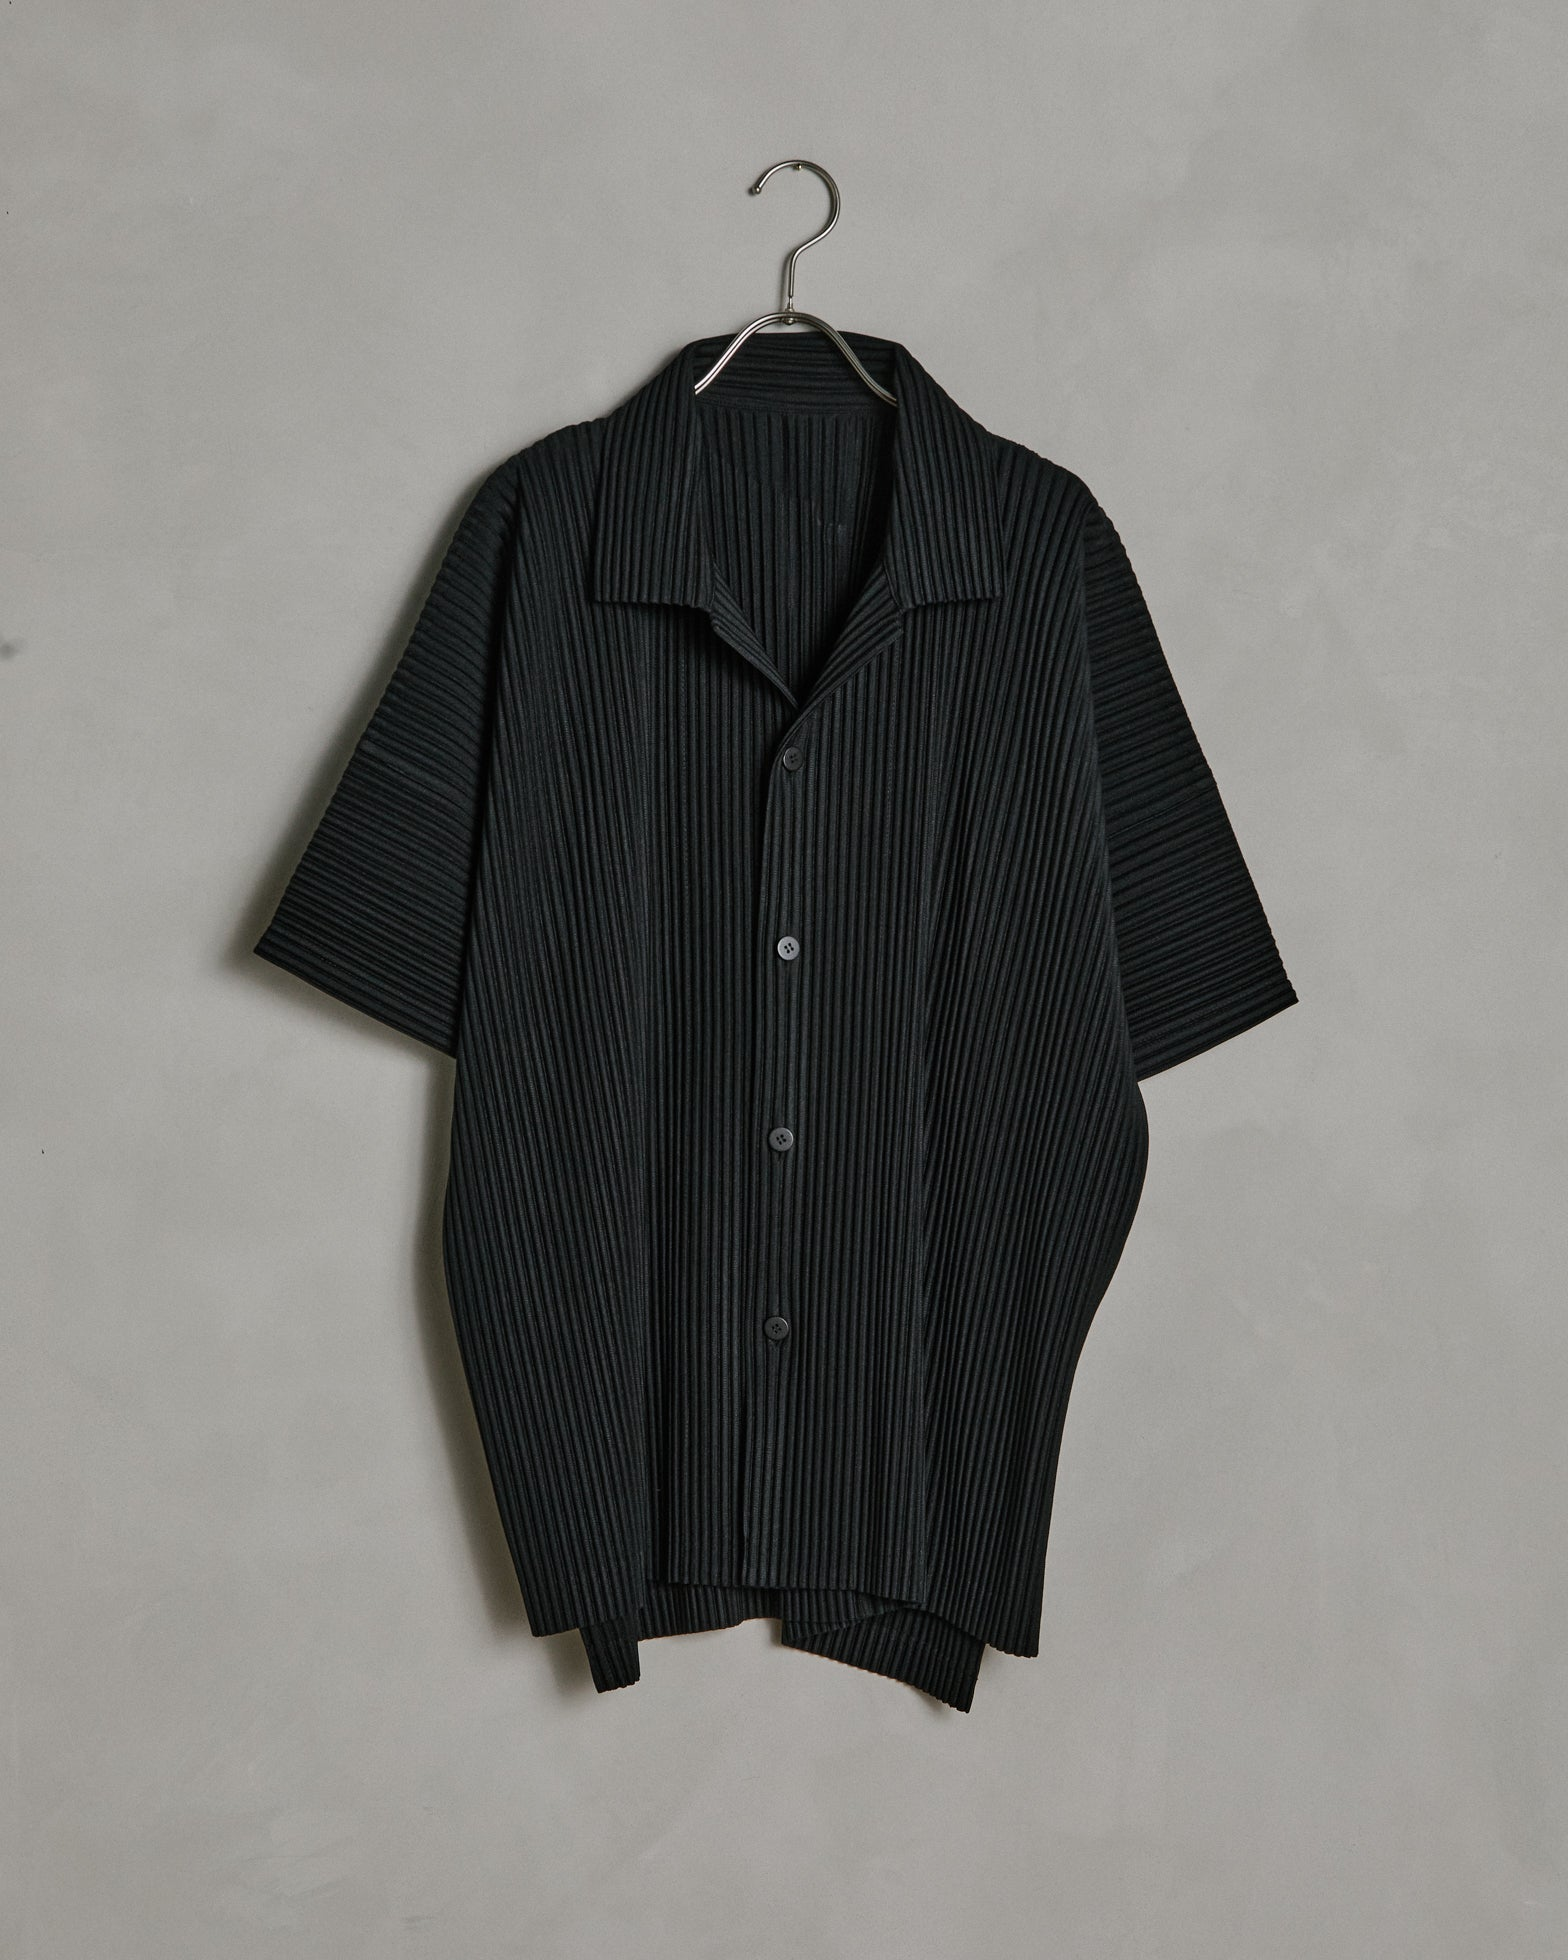 MC July Shirt in Black